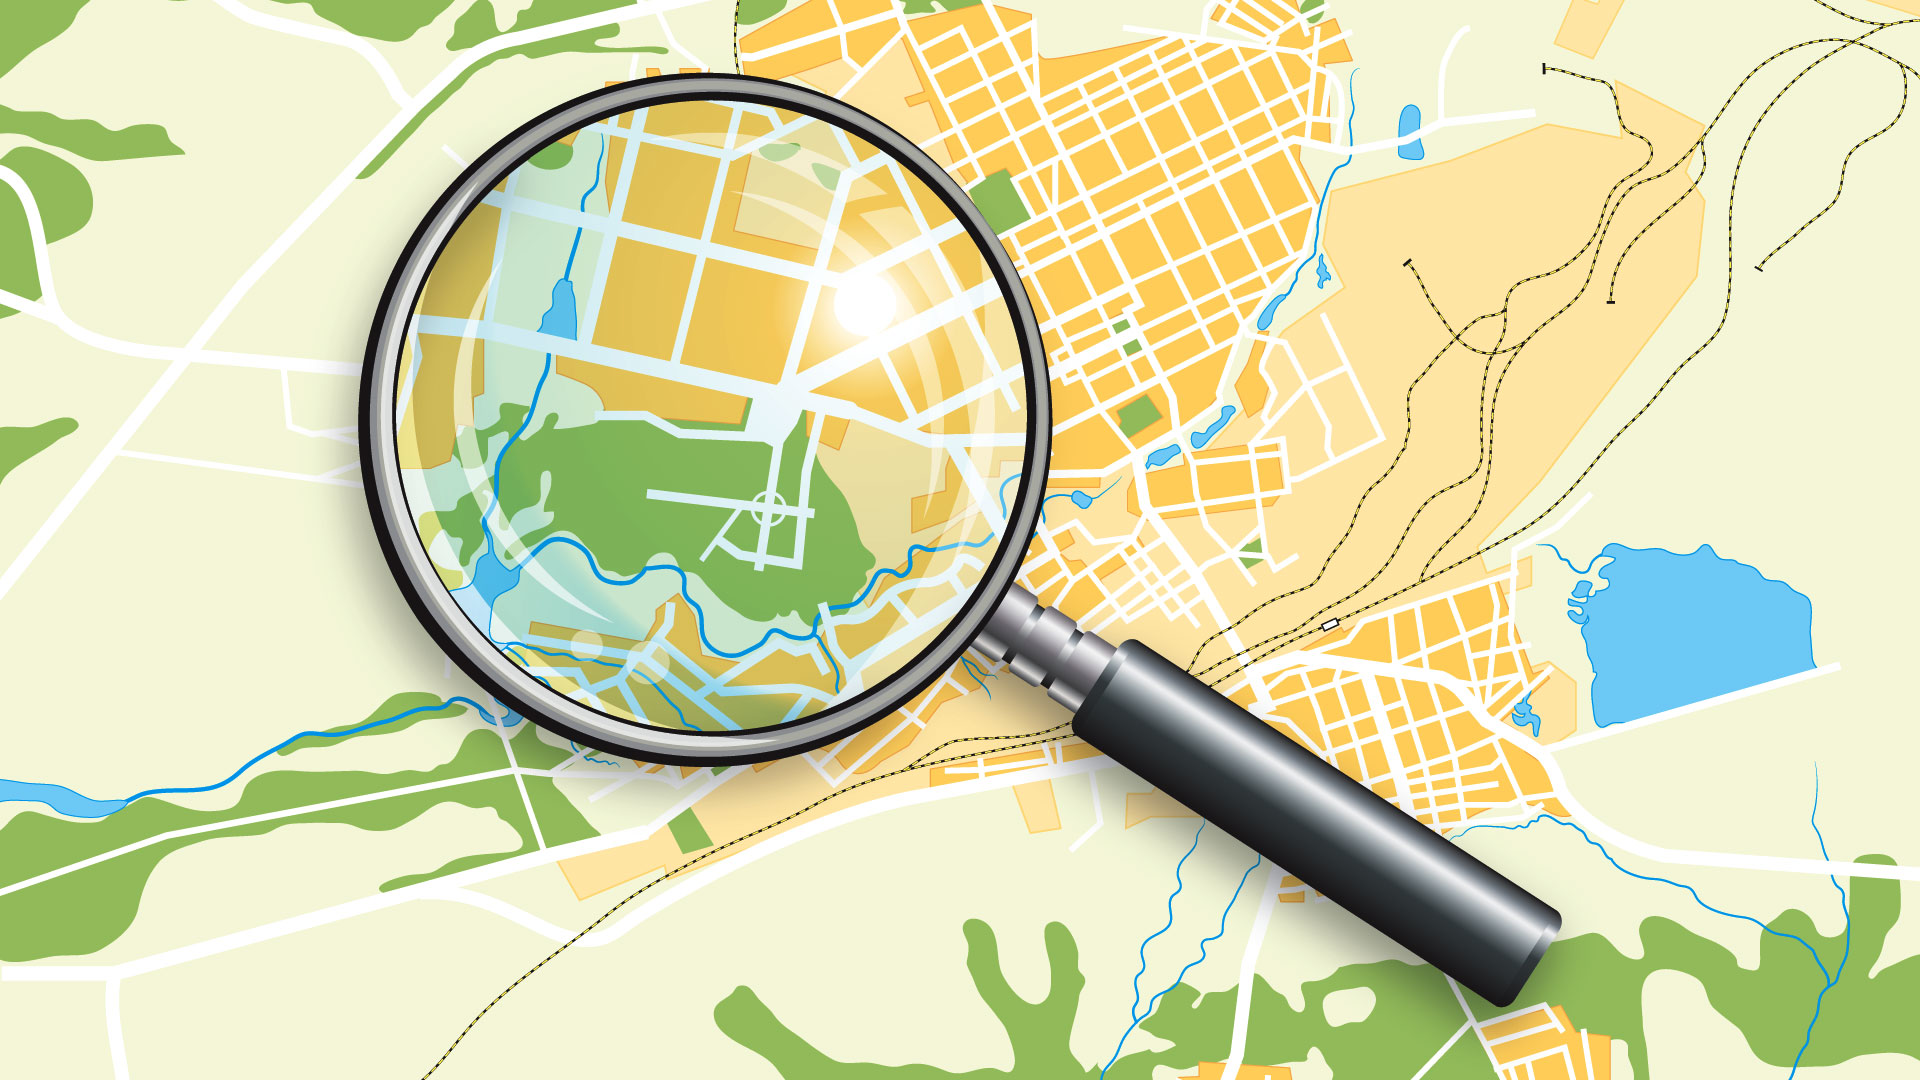 magnifying glass and map image